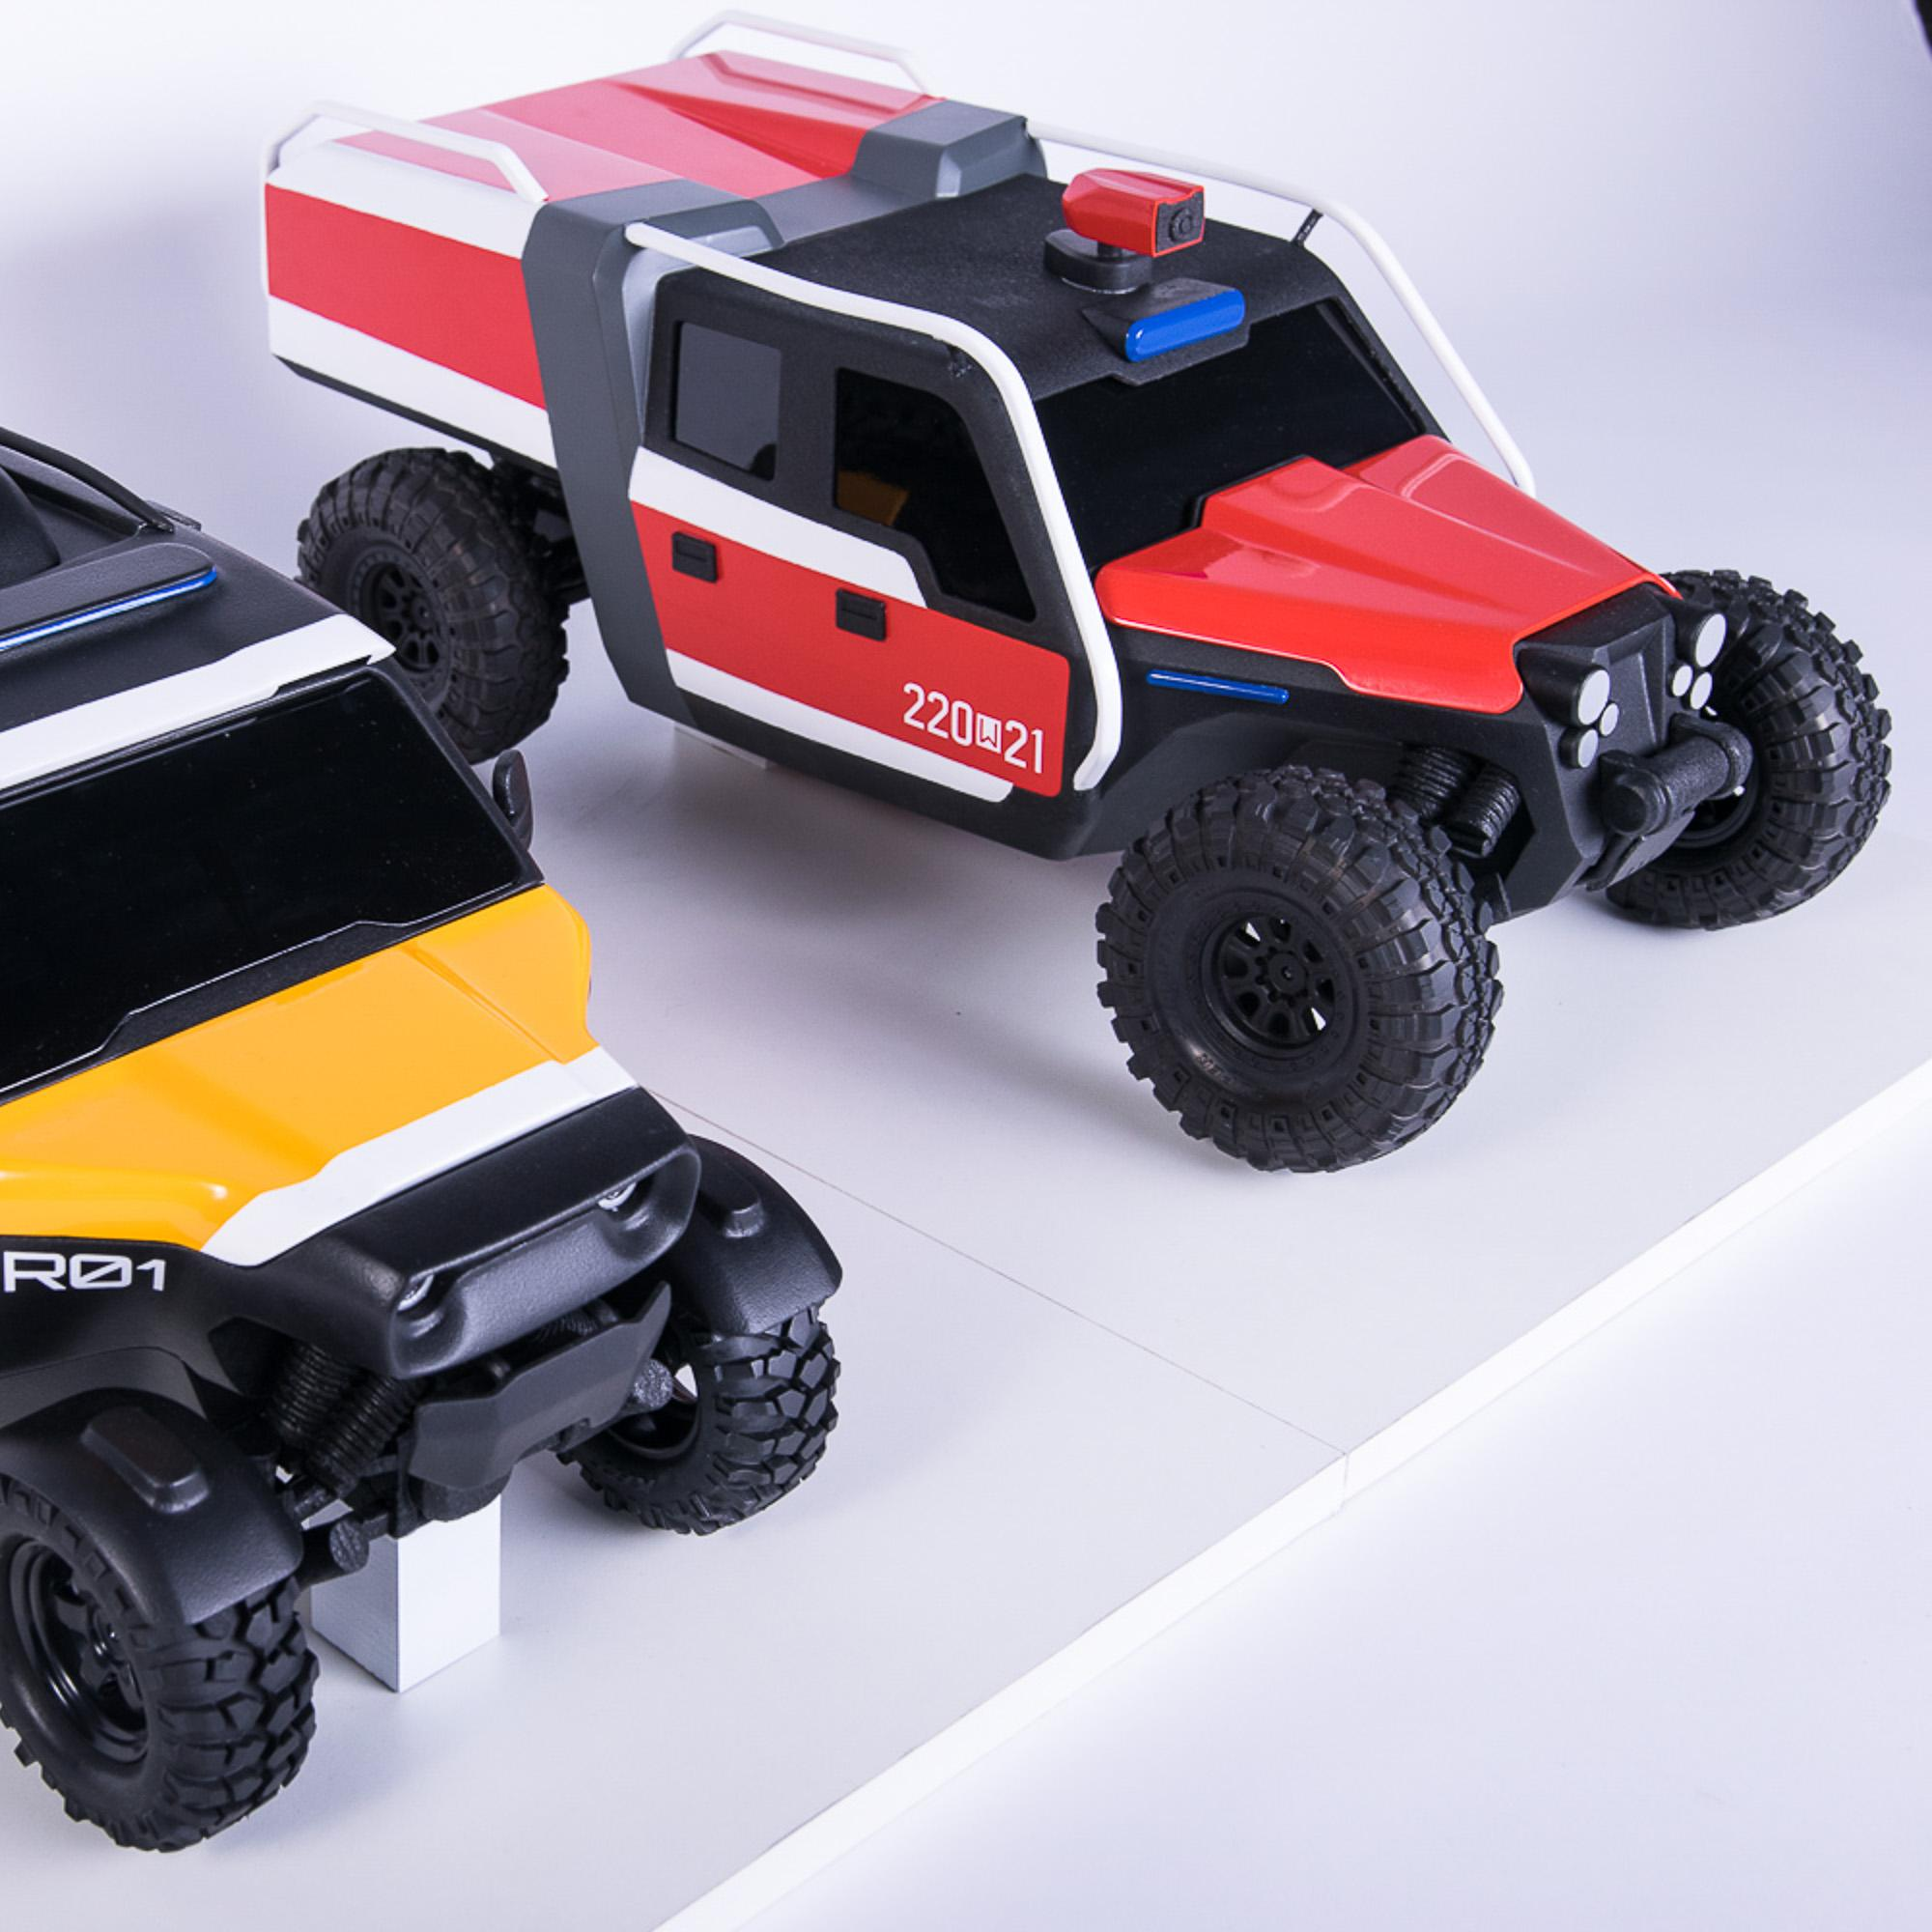 Tur and Surgo concept models